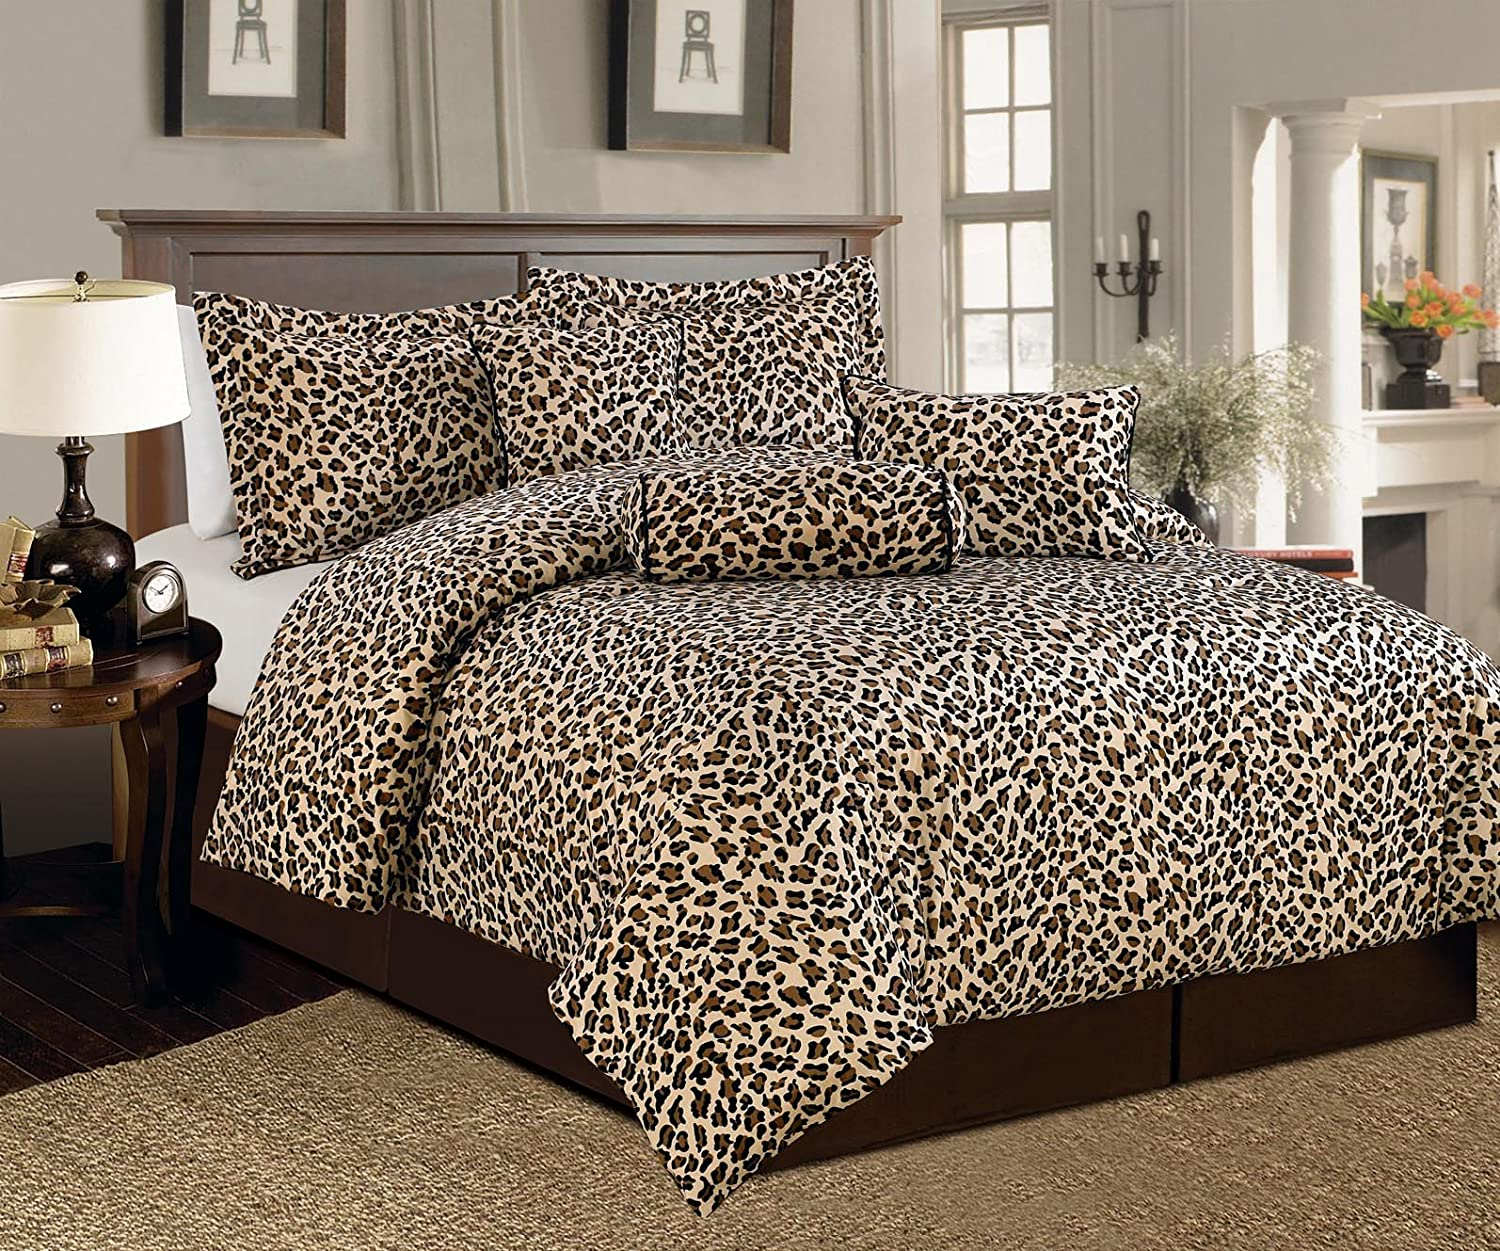 Amazon com  Beautiful 7 Pc Brown and Beige Leopard Print Faux Fur  Full  Size Comforter Bedding Set  Home   Kitchen. Amazon com  Beautiful 7 Pc Brown and Beige Leopard Print Faux Fur